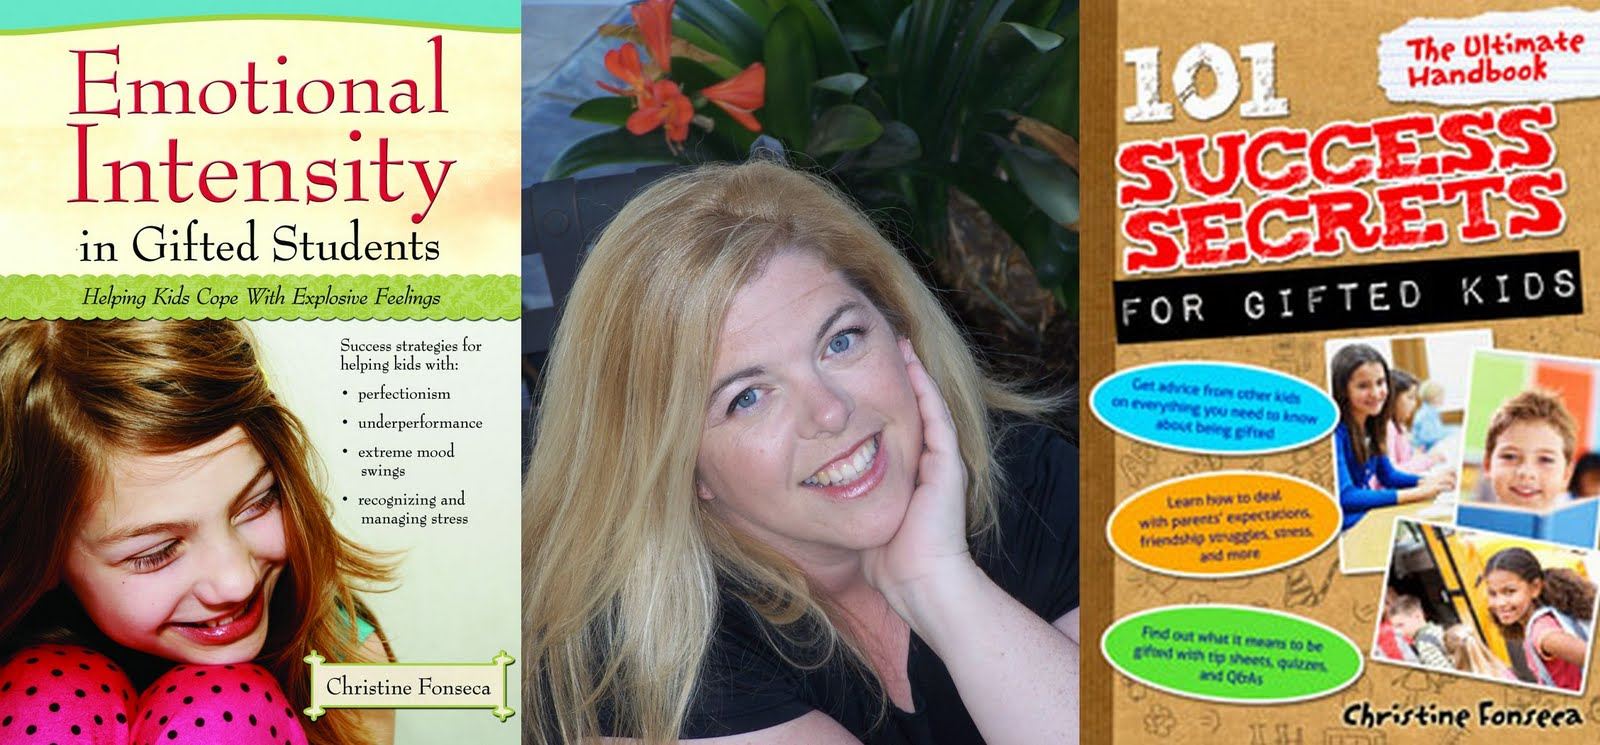 A Little Advice and 101 Success Secrets for Gifted Kids